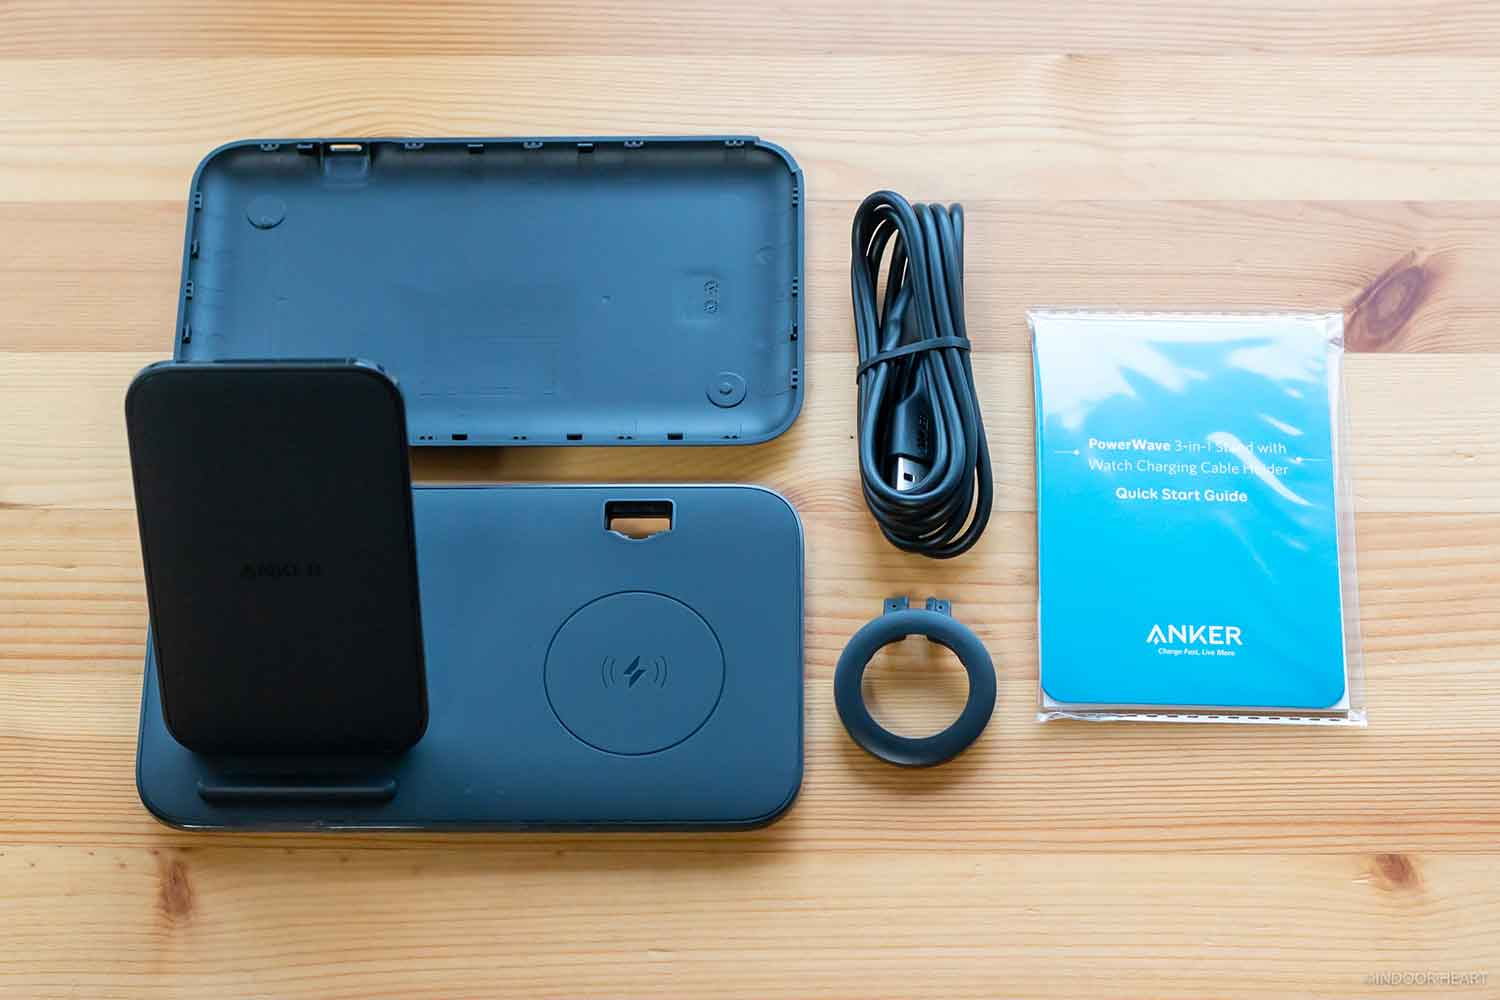 「Anker PowerWave+ 3 in 1 stand with Watch Holder」の付属品